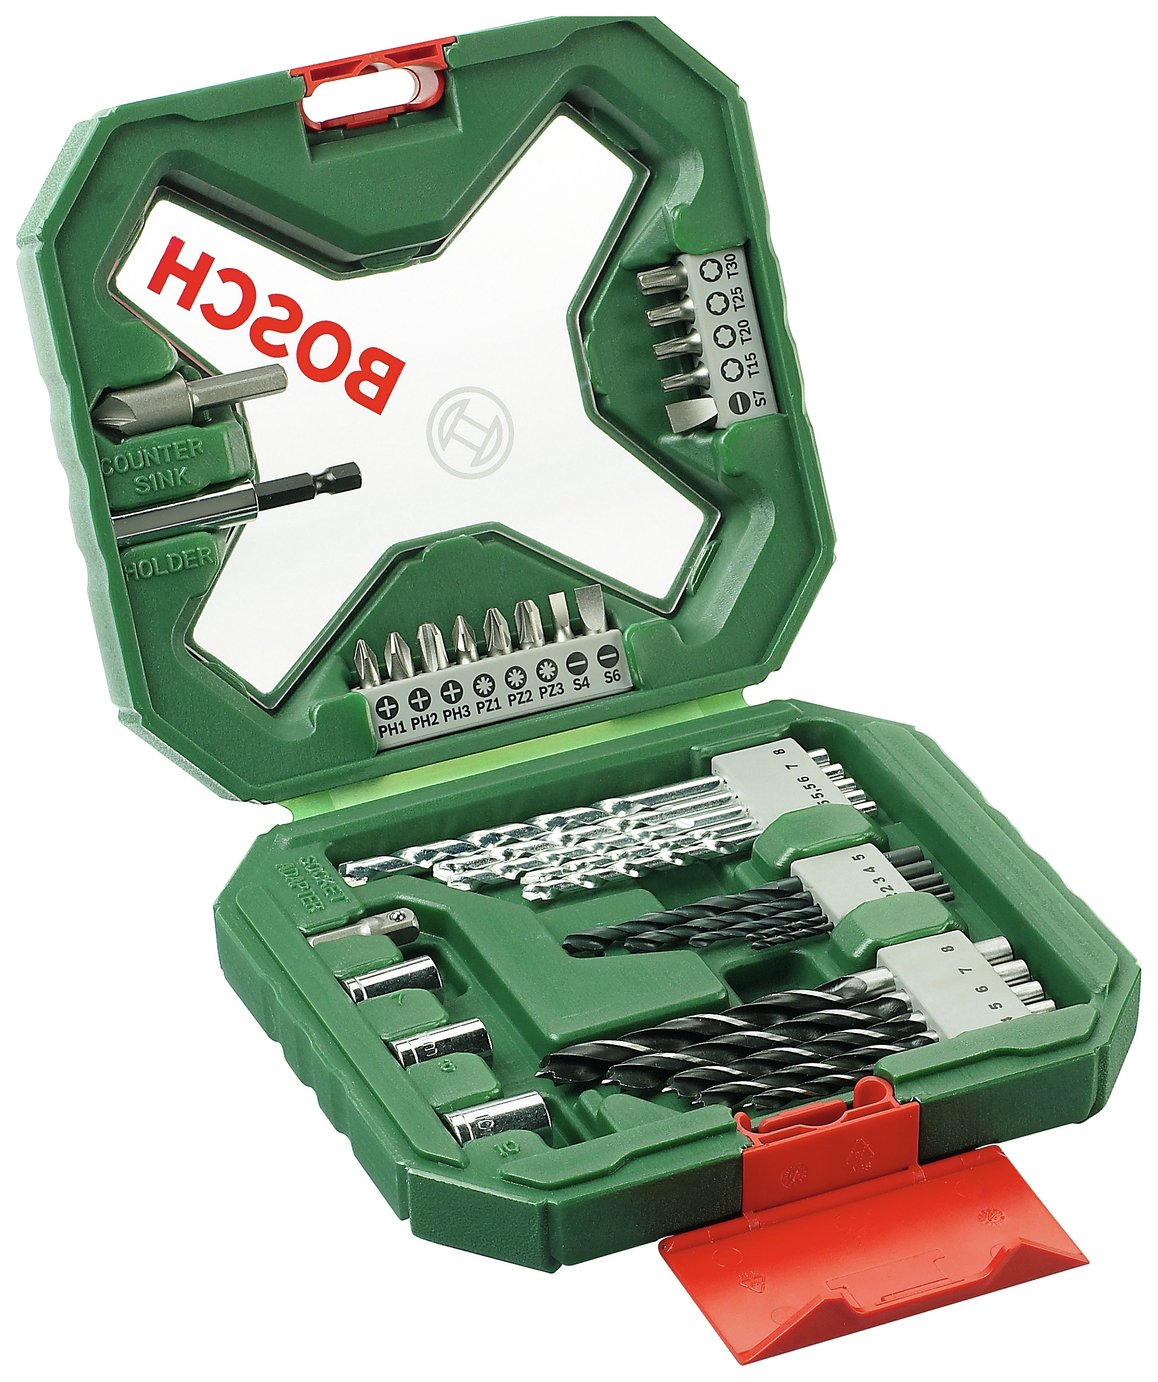 Bosch 34 Piece X-Line Classic Drill and Screwdriver Bit Set